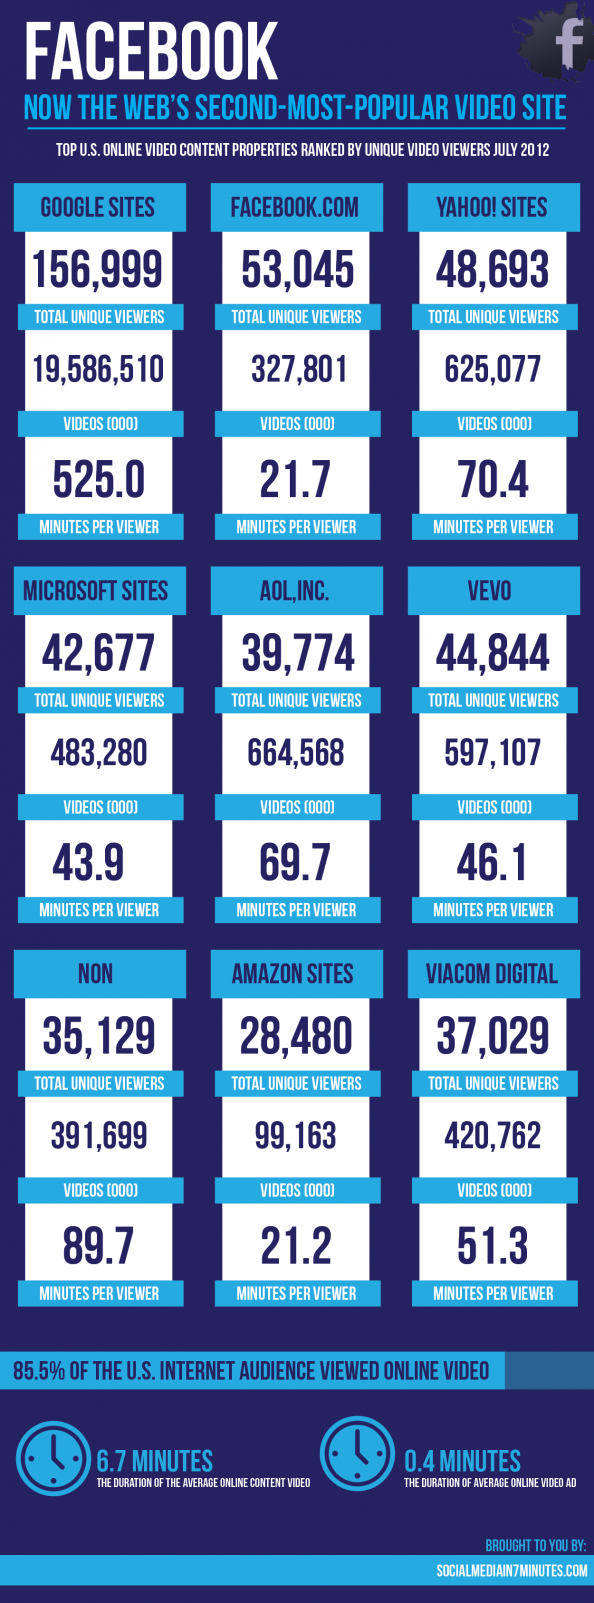 Facebook Is Now the Web&#039;s Second Most Popular Video Site Infographic